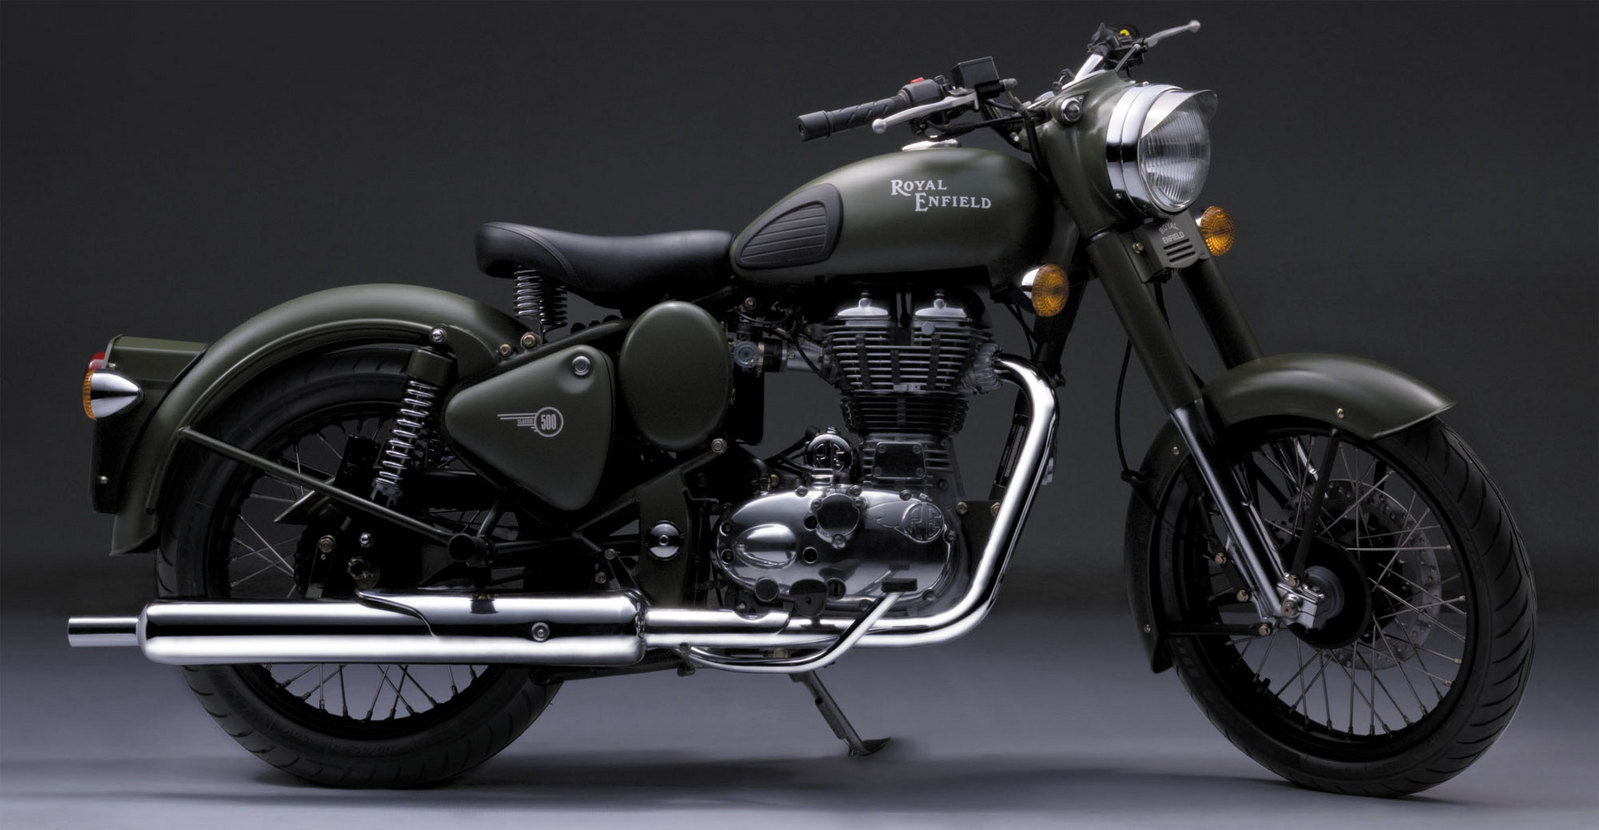 """royal enfield The royal enfield classic 500 is the perfect motorcycle for a beginner or for anyone wanting to get back on a bike after many years of driving around in a """"cage."""